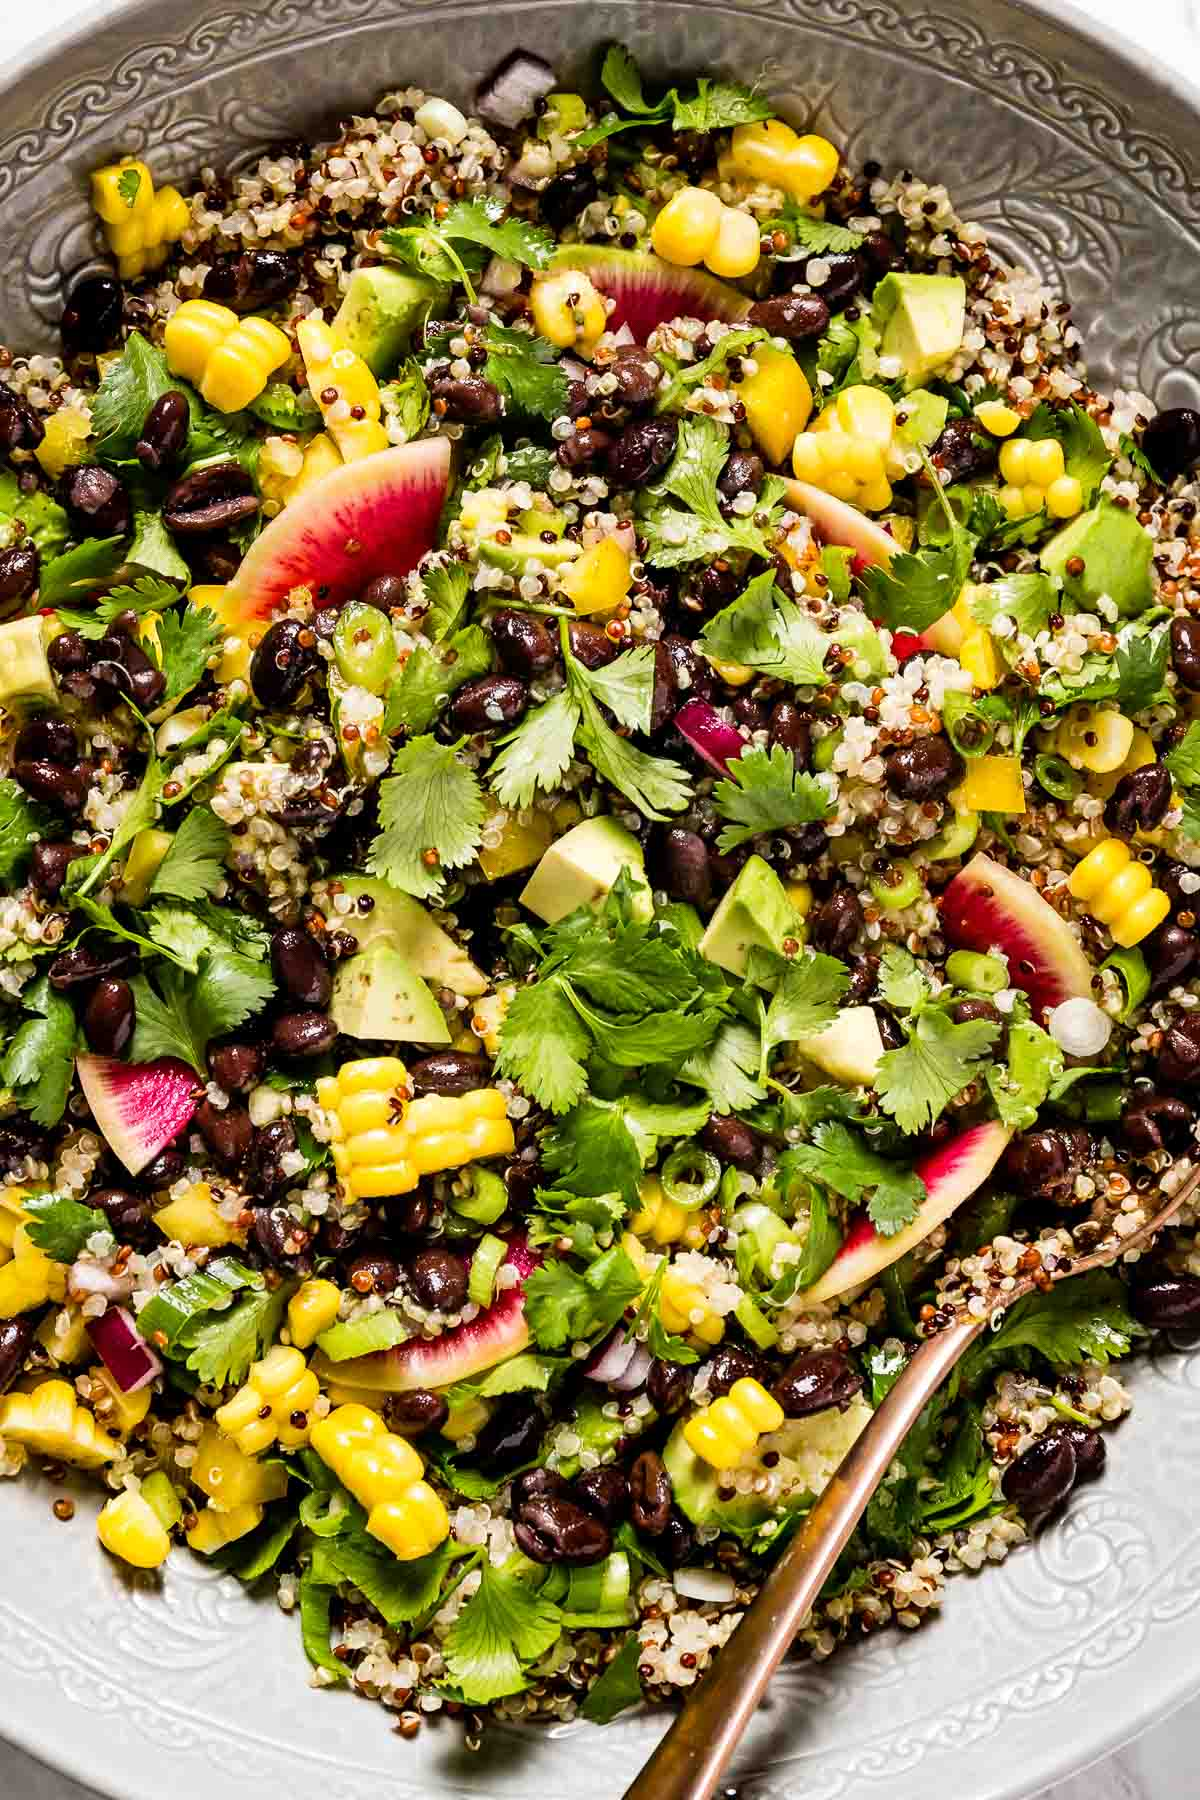 Quinoa Black Bean Avocado Salad in a bowl from close up